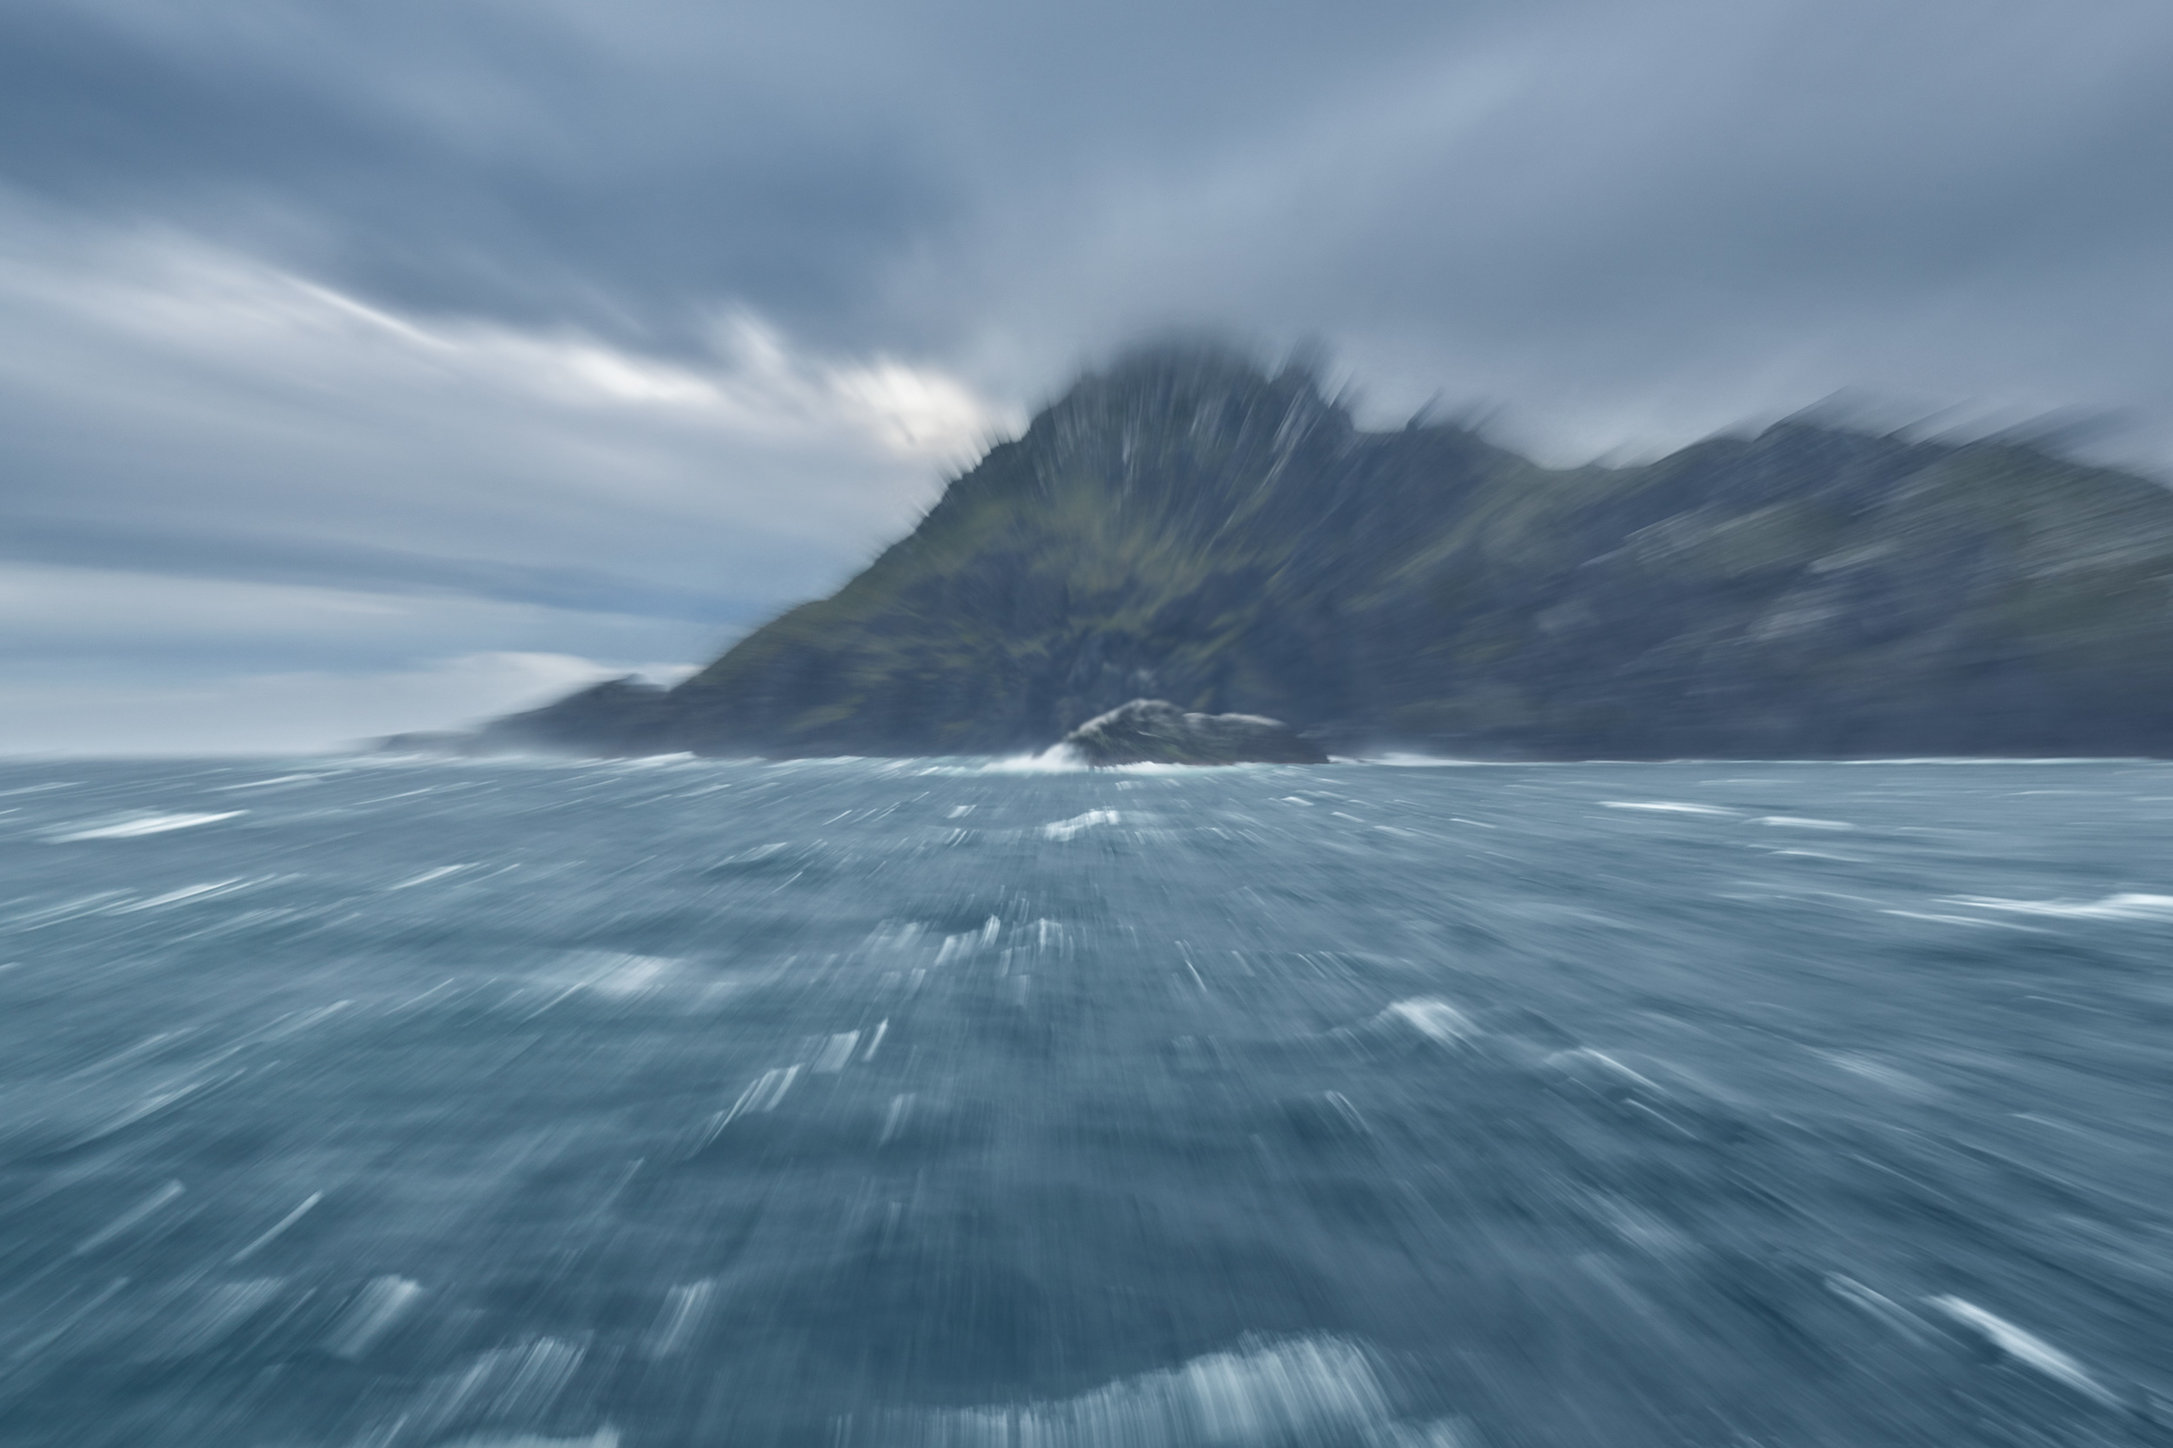 Land / Patagonia / Cape Horn